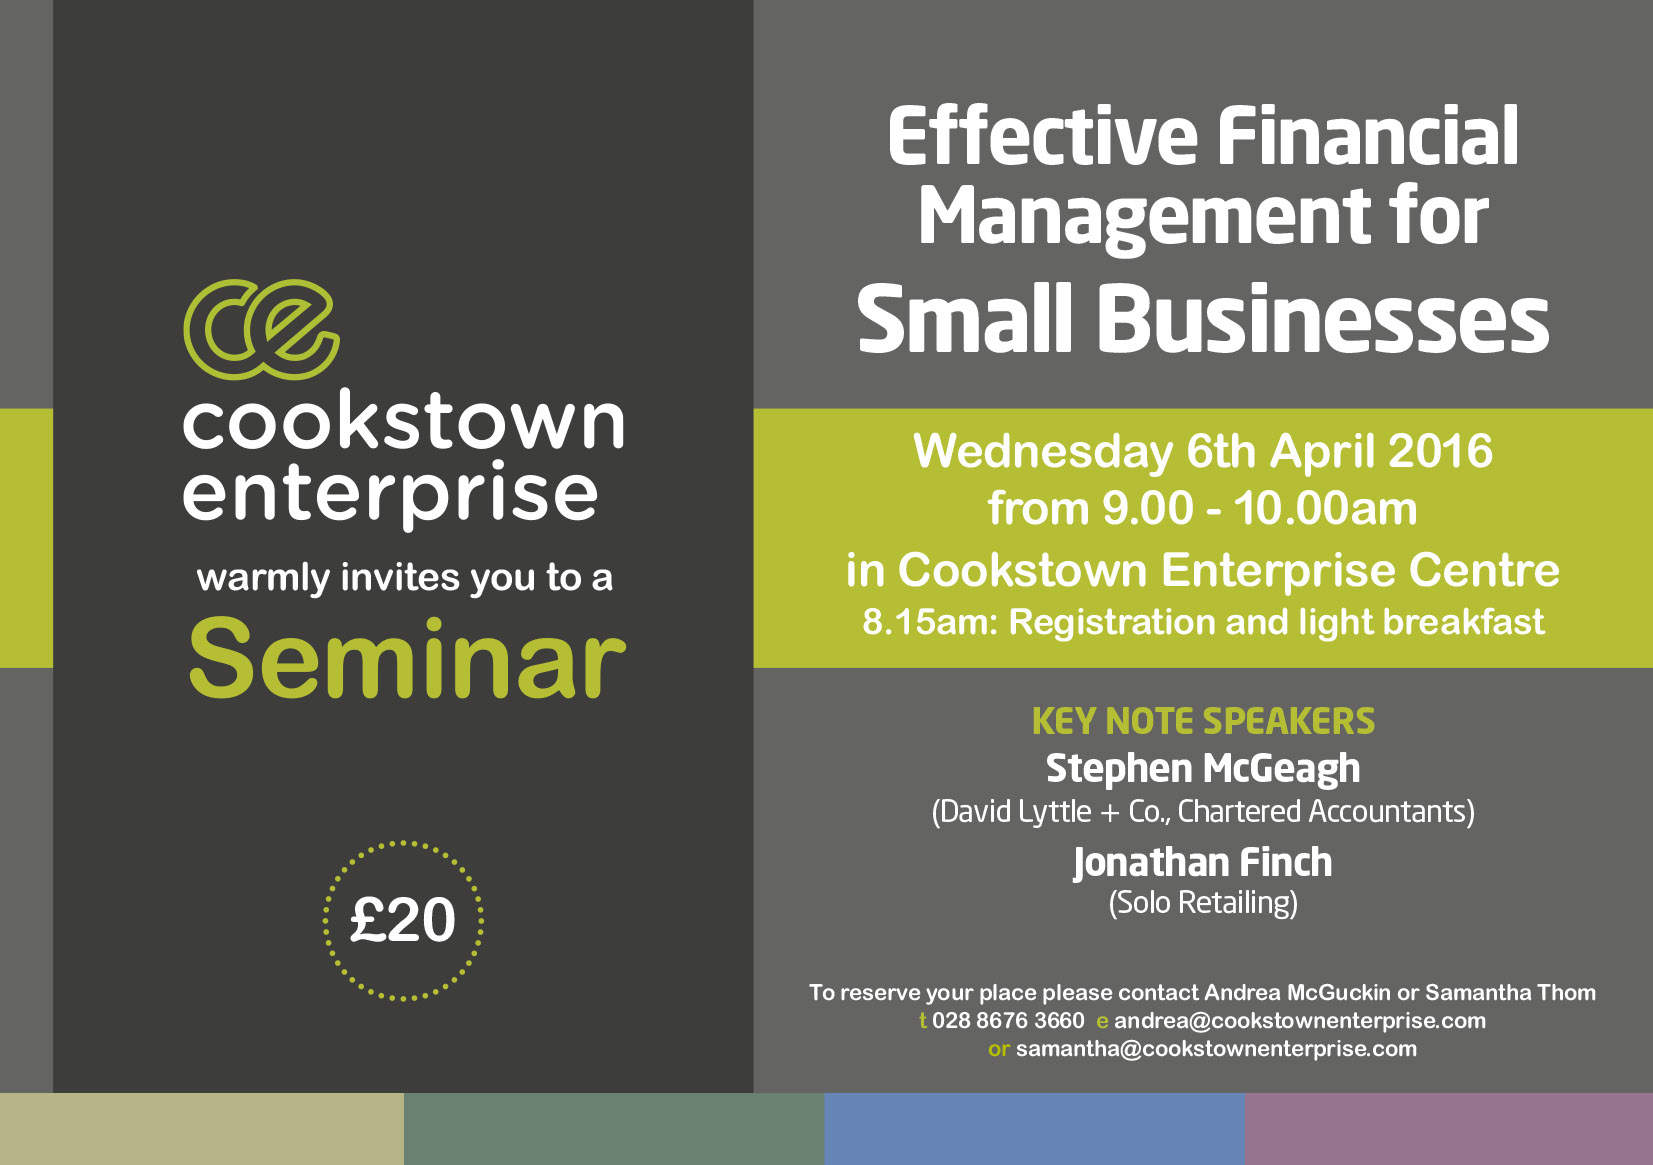 Link to Effective Financial Management Seminar post